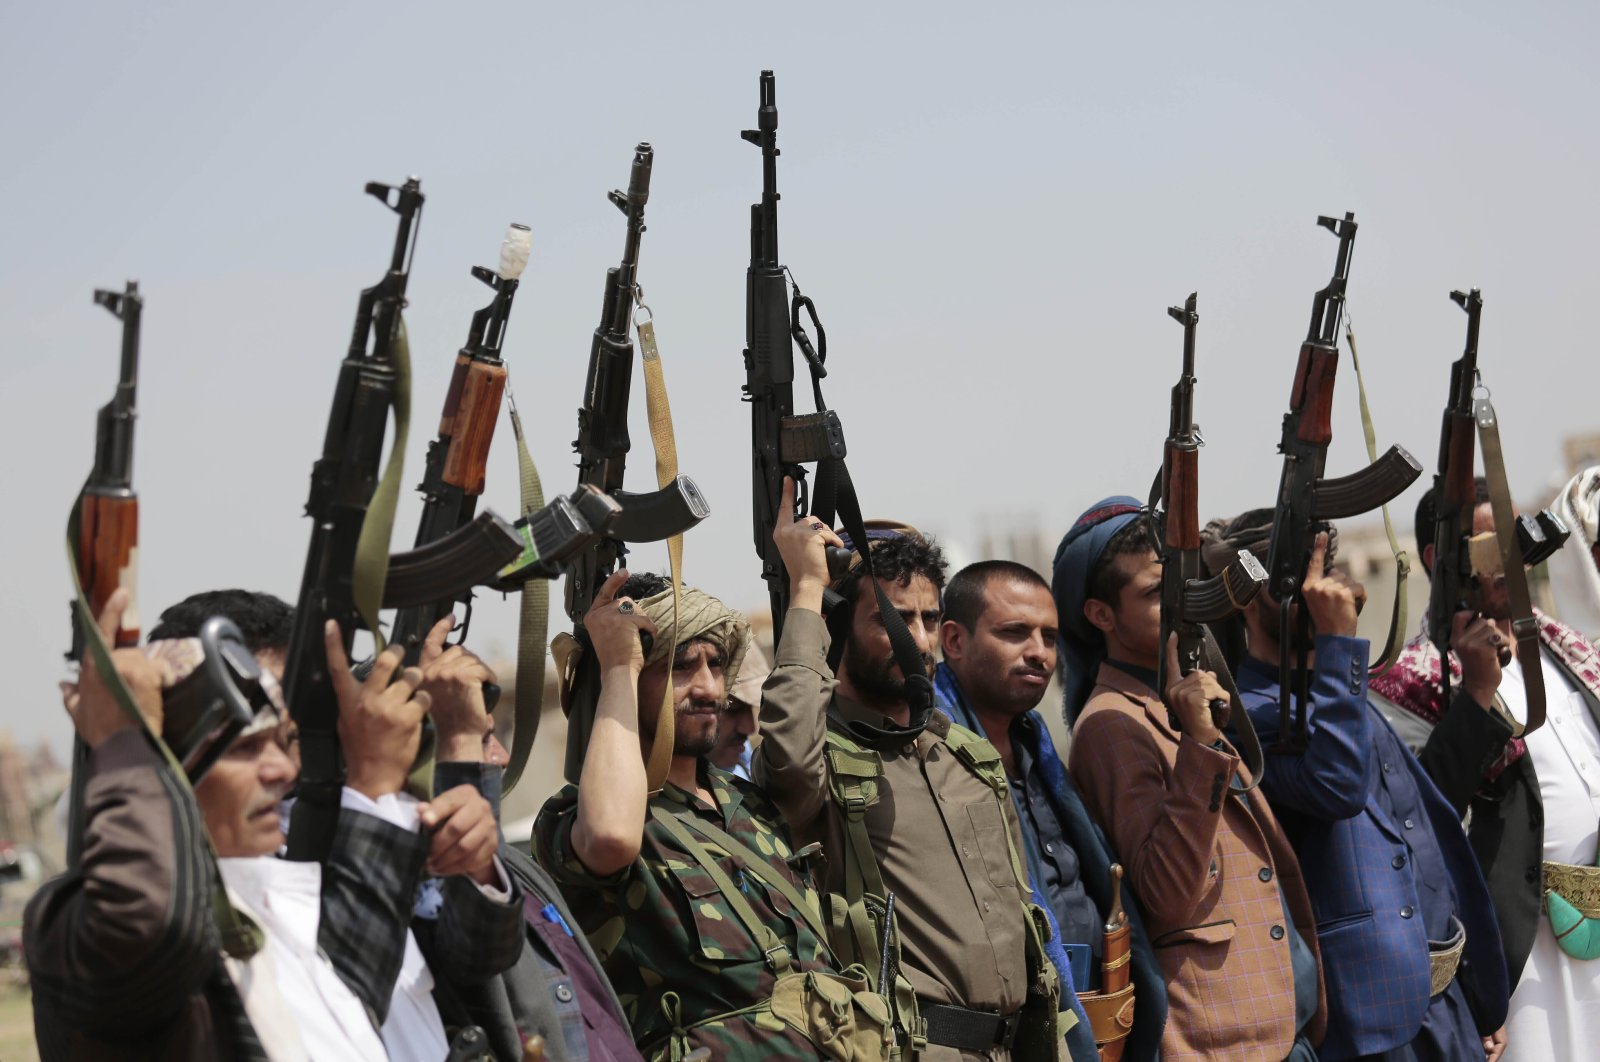 Tribesmen loyal to the Houthis raise their weapons during a protest against the agreement to establish diplomatic relations between Israel and the United Arab Emirates, in Sanaa, Yemen, Aug. 22, 2020. (AP Photo)